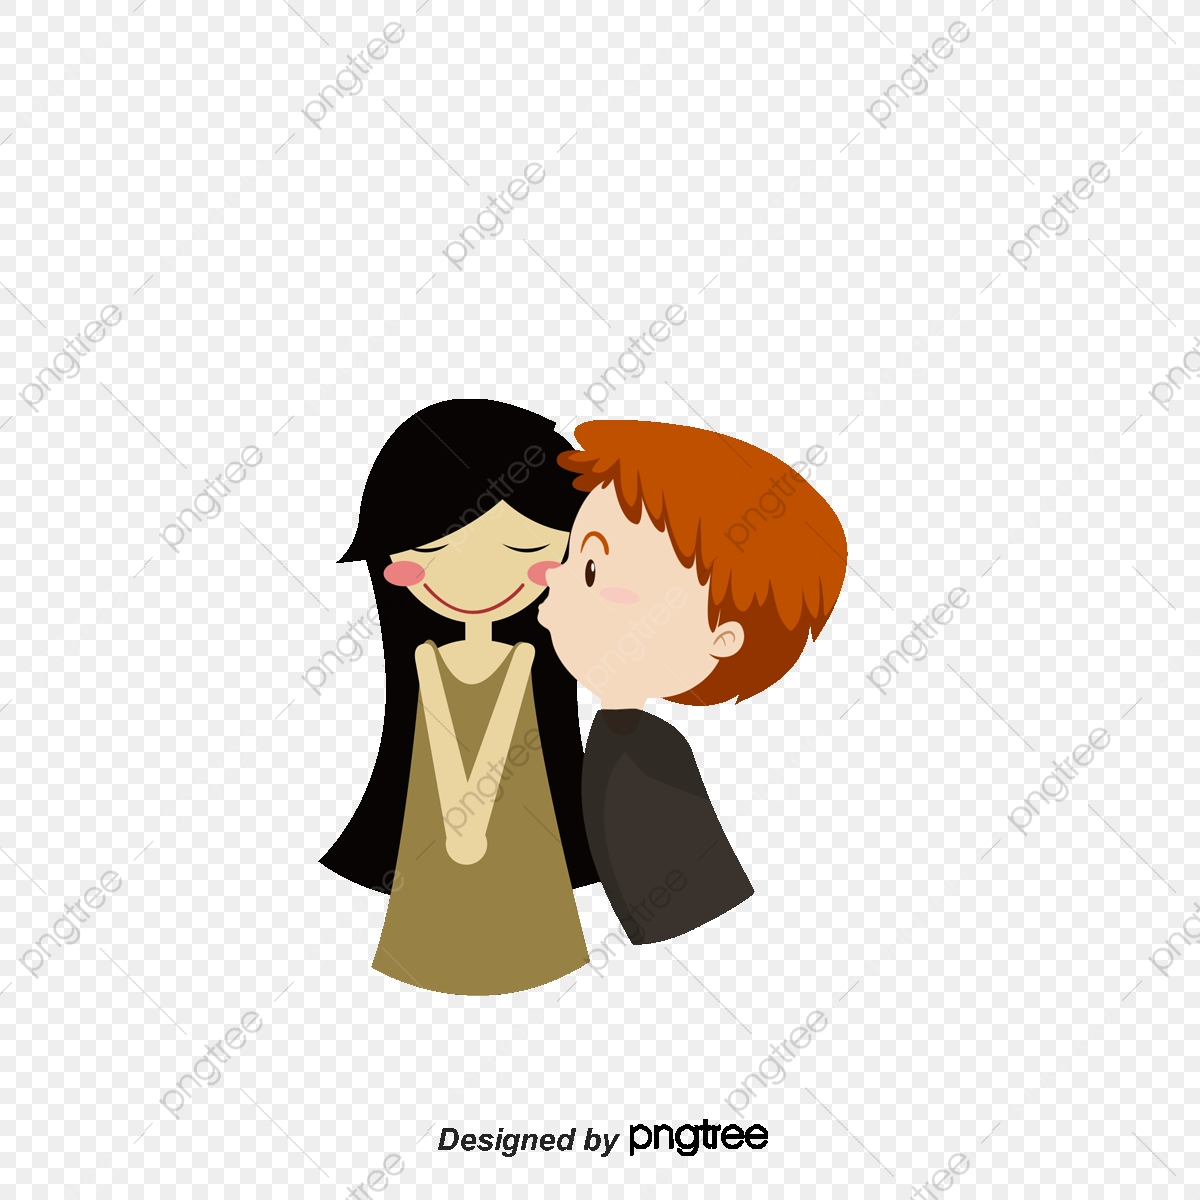 Cartoon Couple Material Cartoon Couple Boys And Girls Love Png